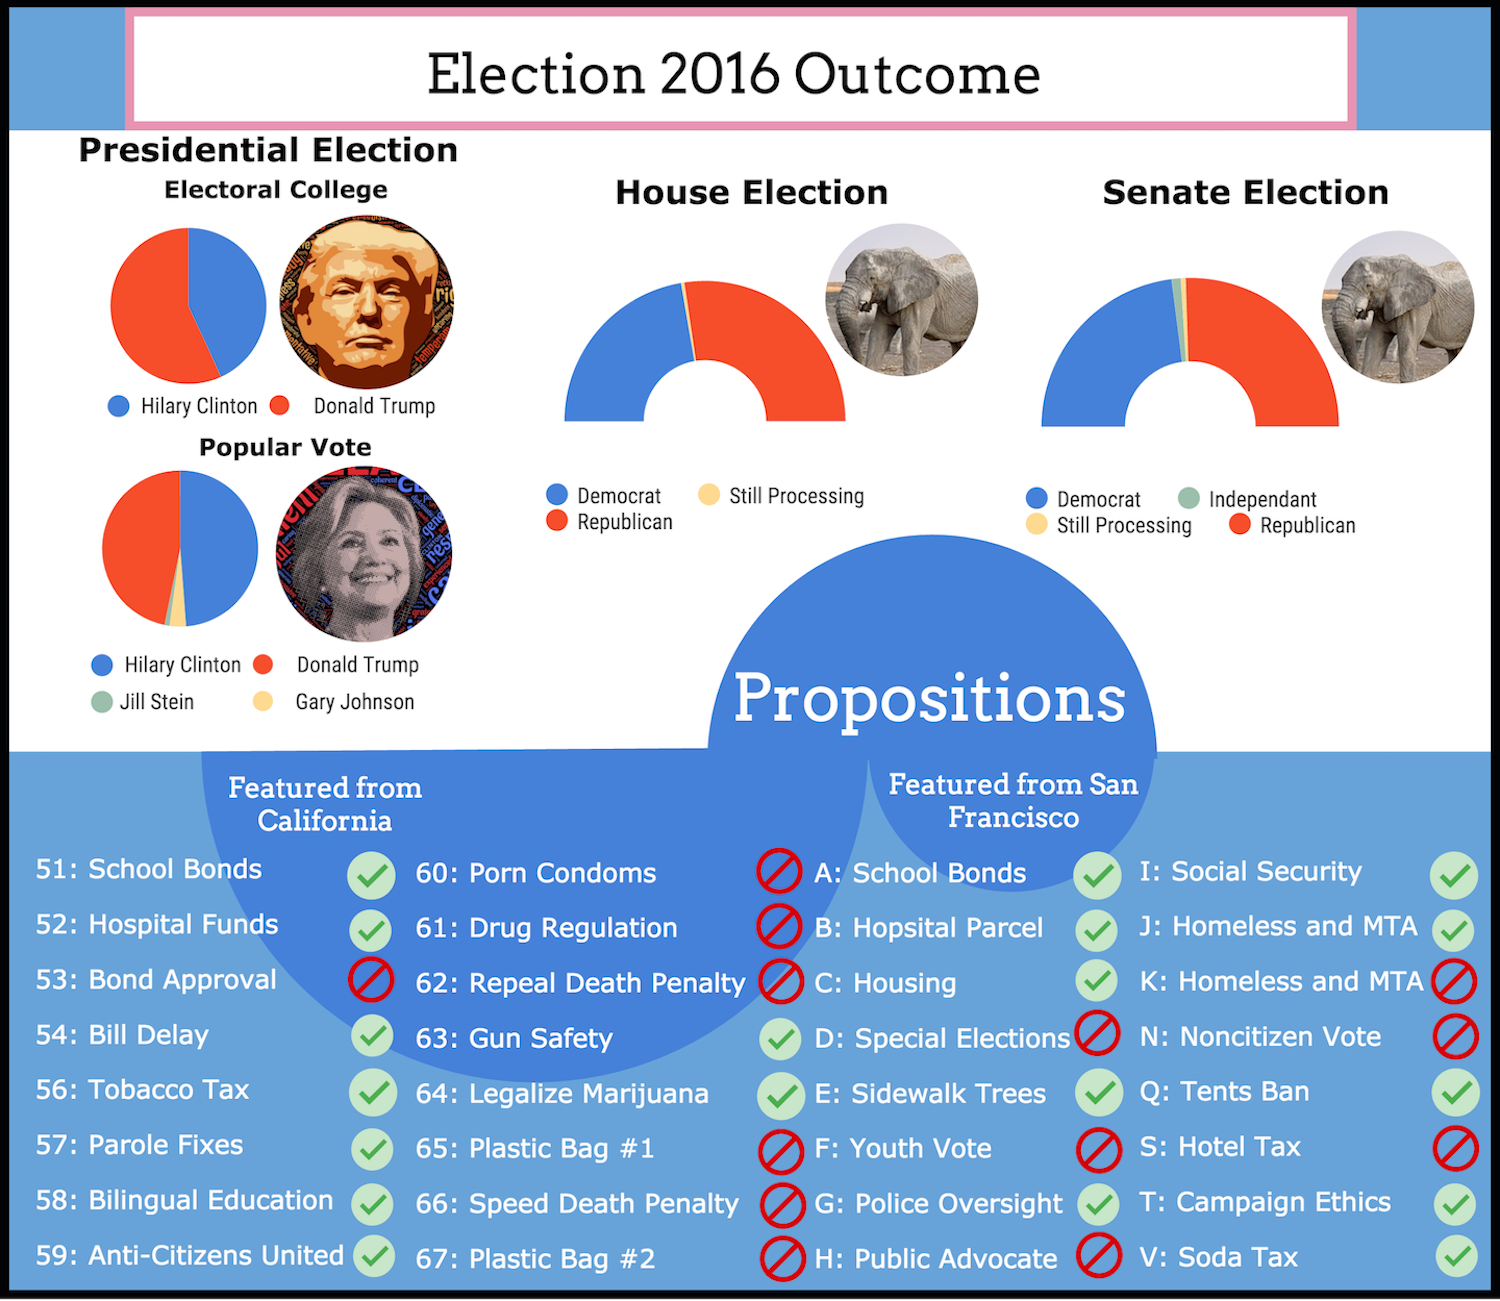 Infographic of 2016 Election Results, made by Kian Nassre.